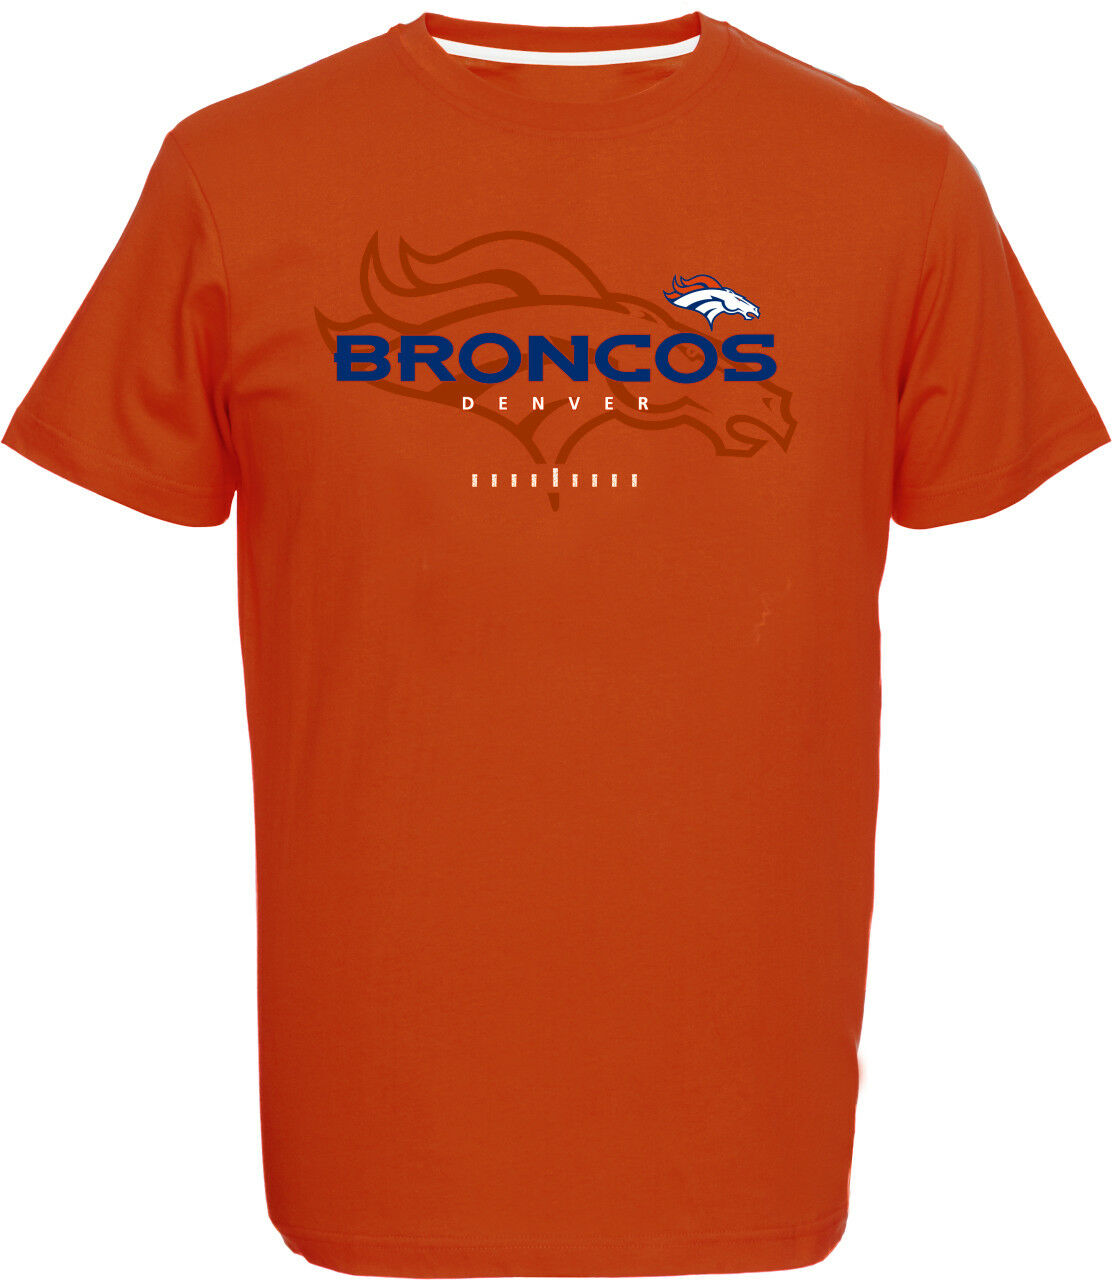 NFL Football Denver Broncos T-Shirt T-Shirt T-Shirt Tee Great Value Logo Orange 94ffa8